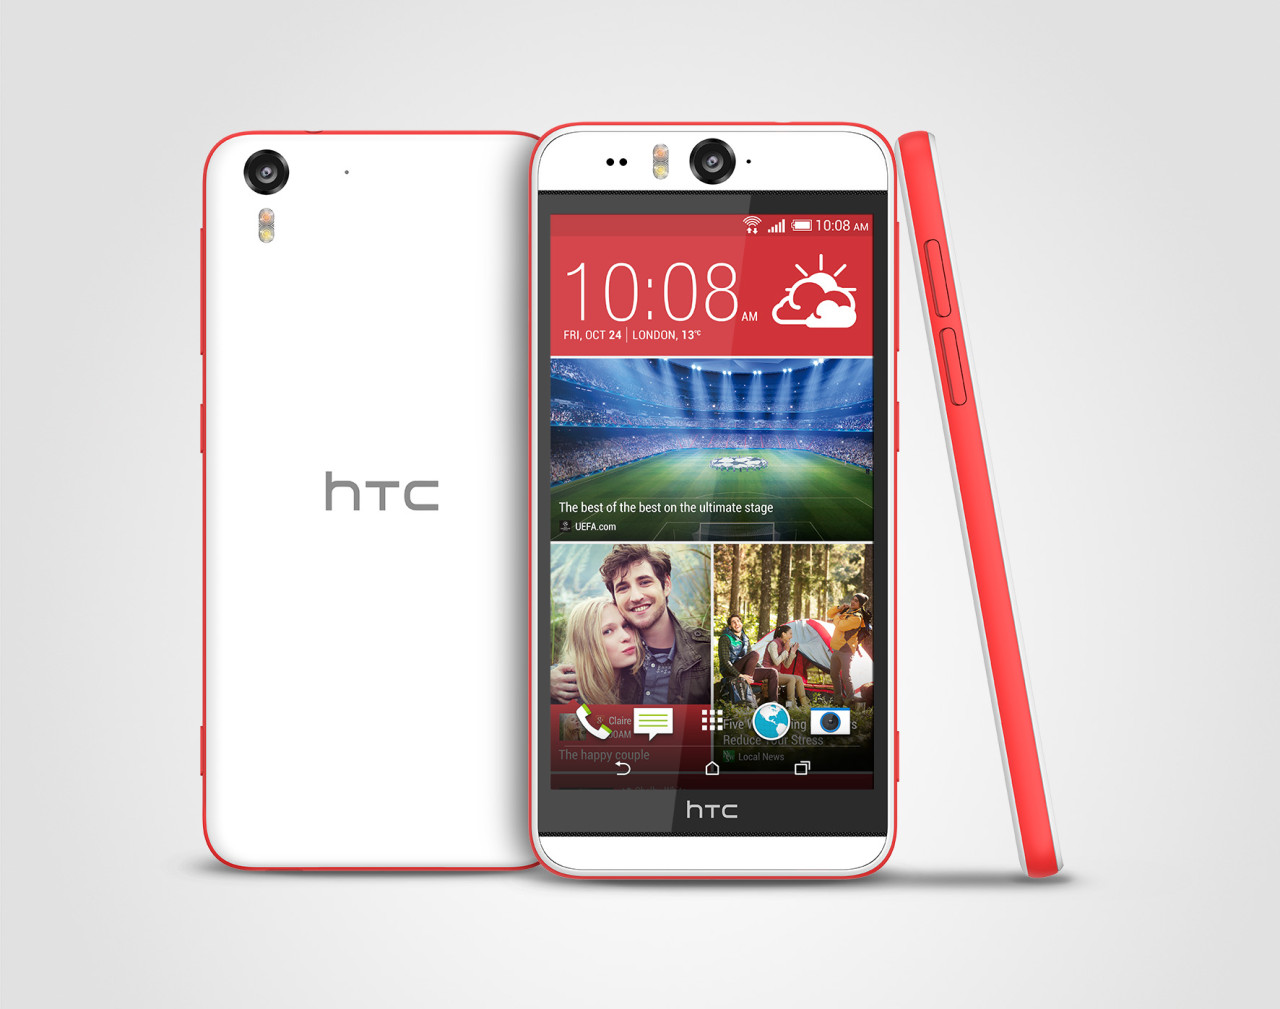 HTC-Desire-Eye-Matt-White-Stack-300-dpi-1280x1009.jpg